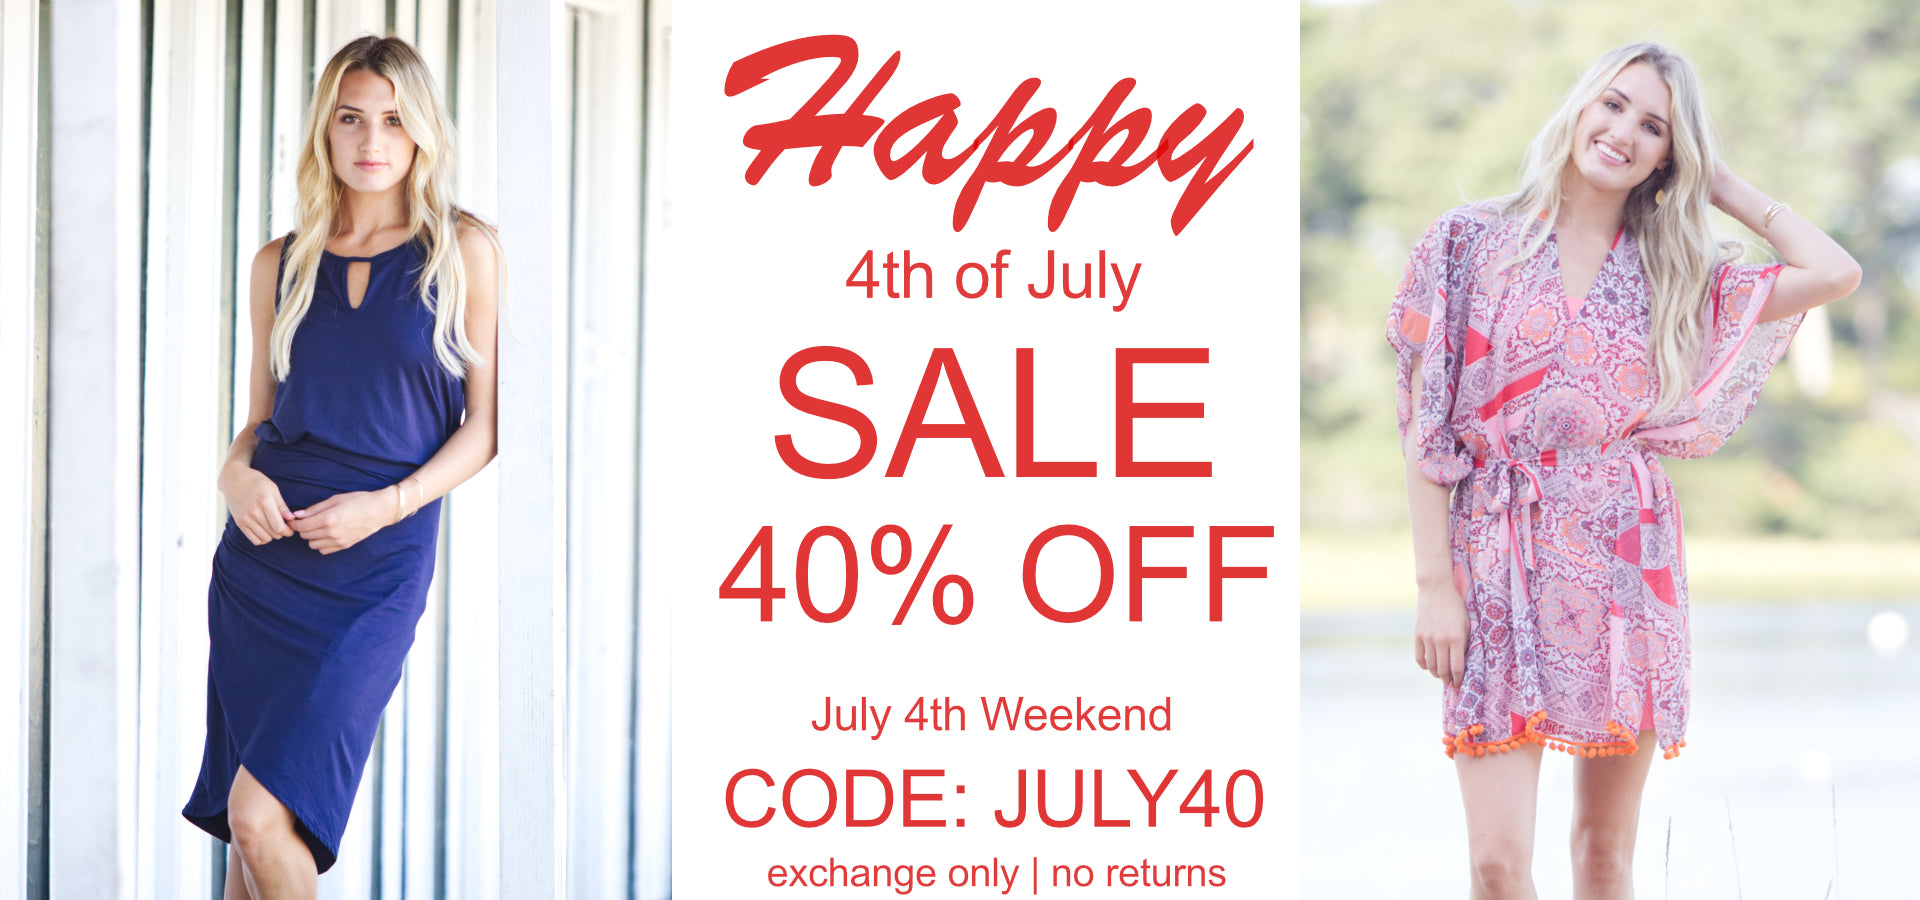 Vacay 4th of July Sale